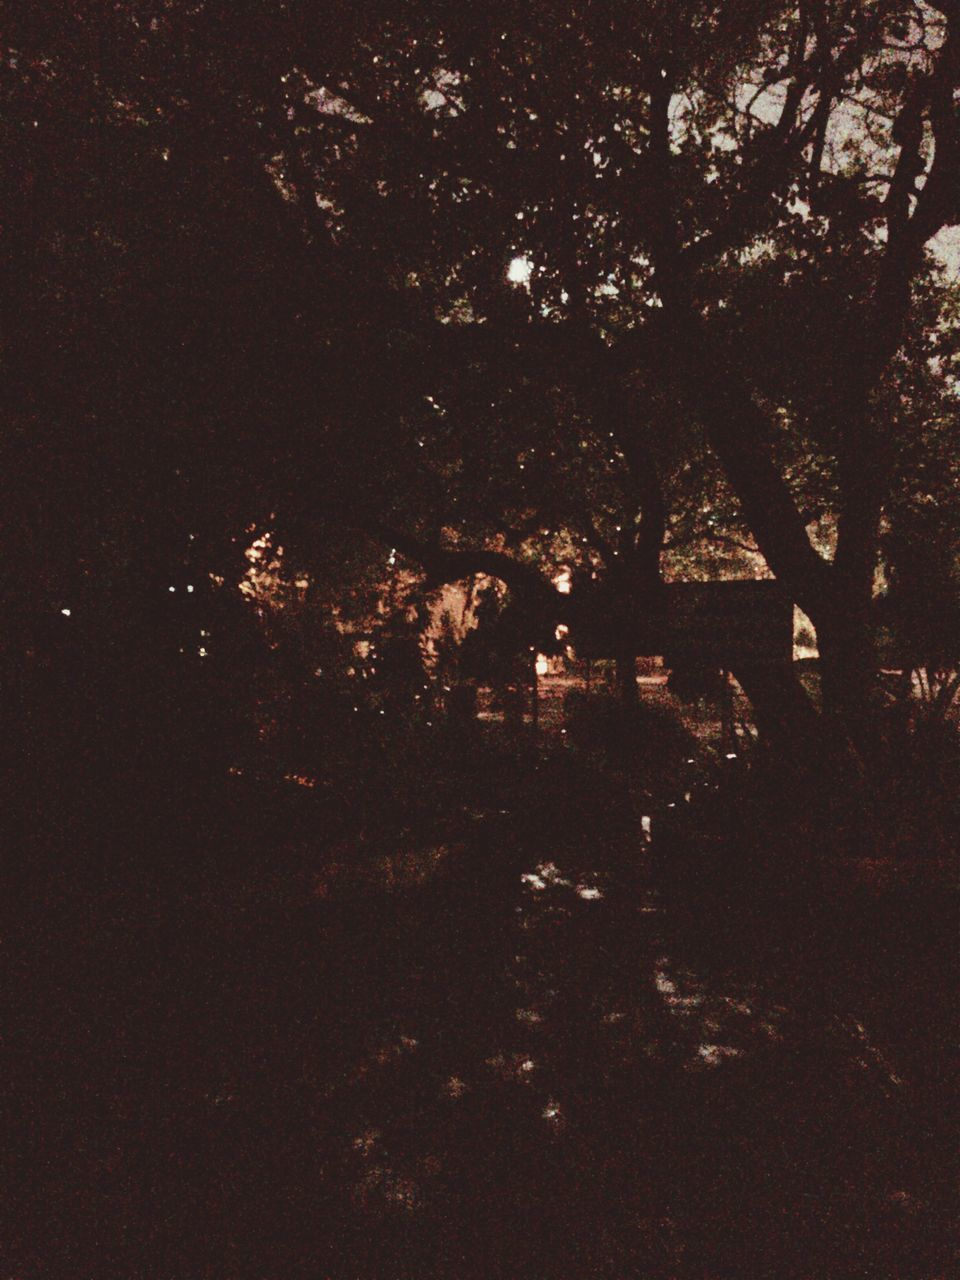 forest, nature, tranquility, night, growth, no people, tree, beauty in nature, outdoors